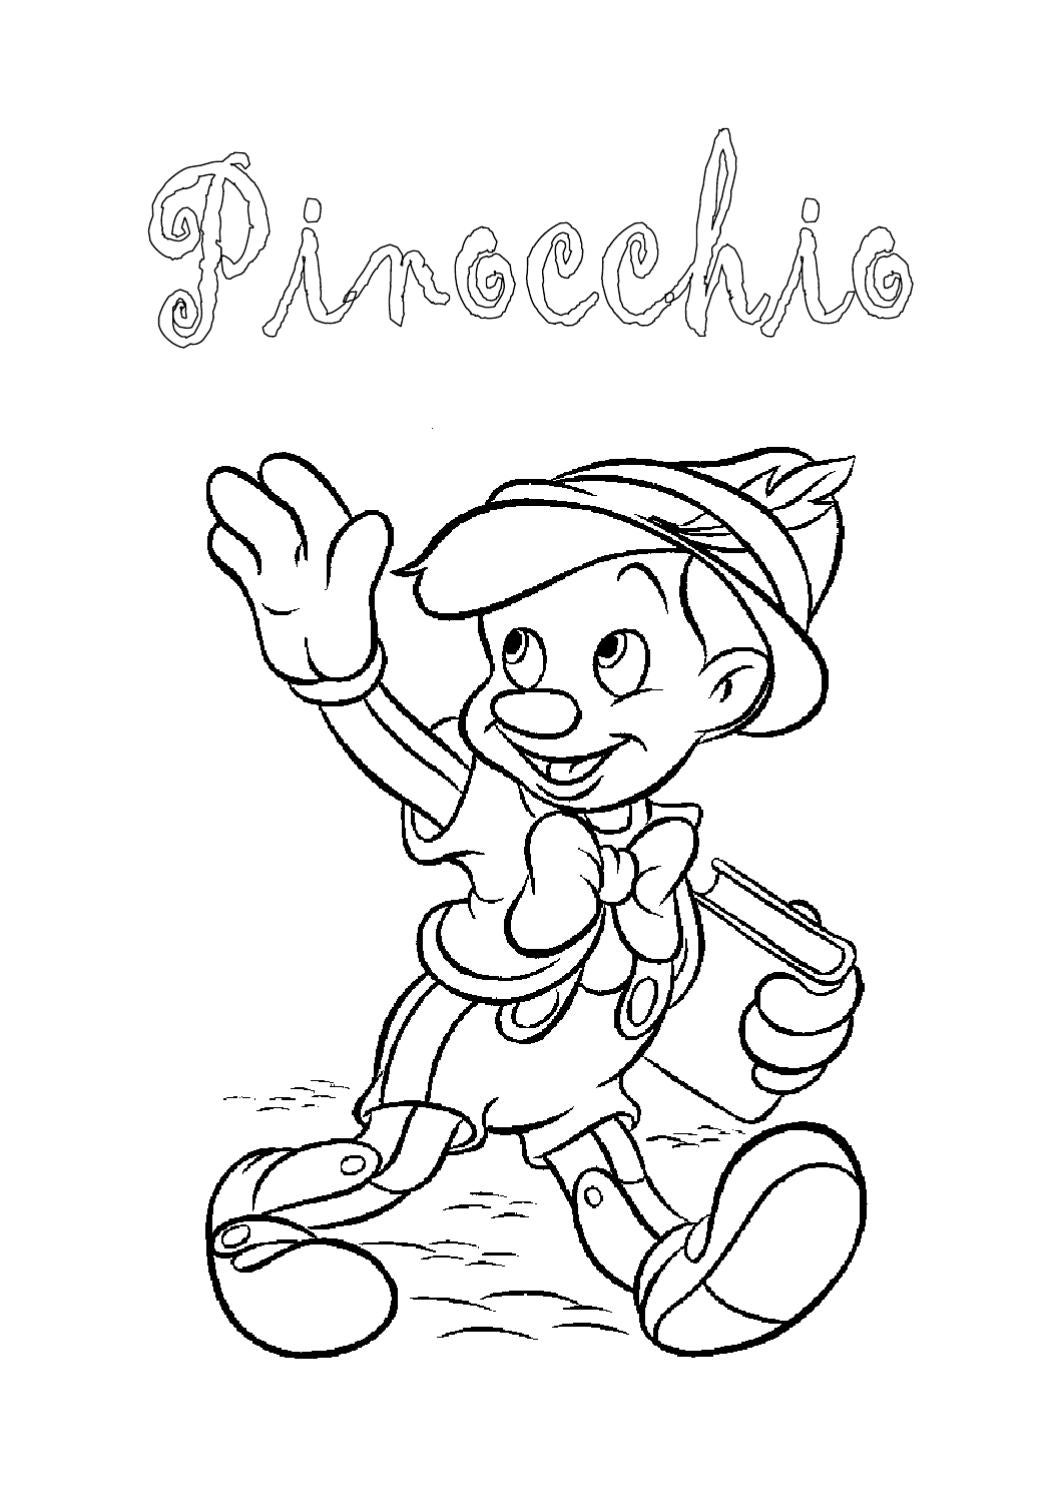 Pinocchio by stefano ceppi issuu for Immagini da colorare walt disney